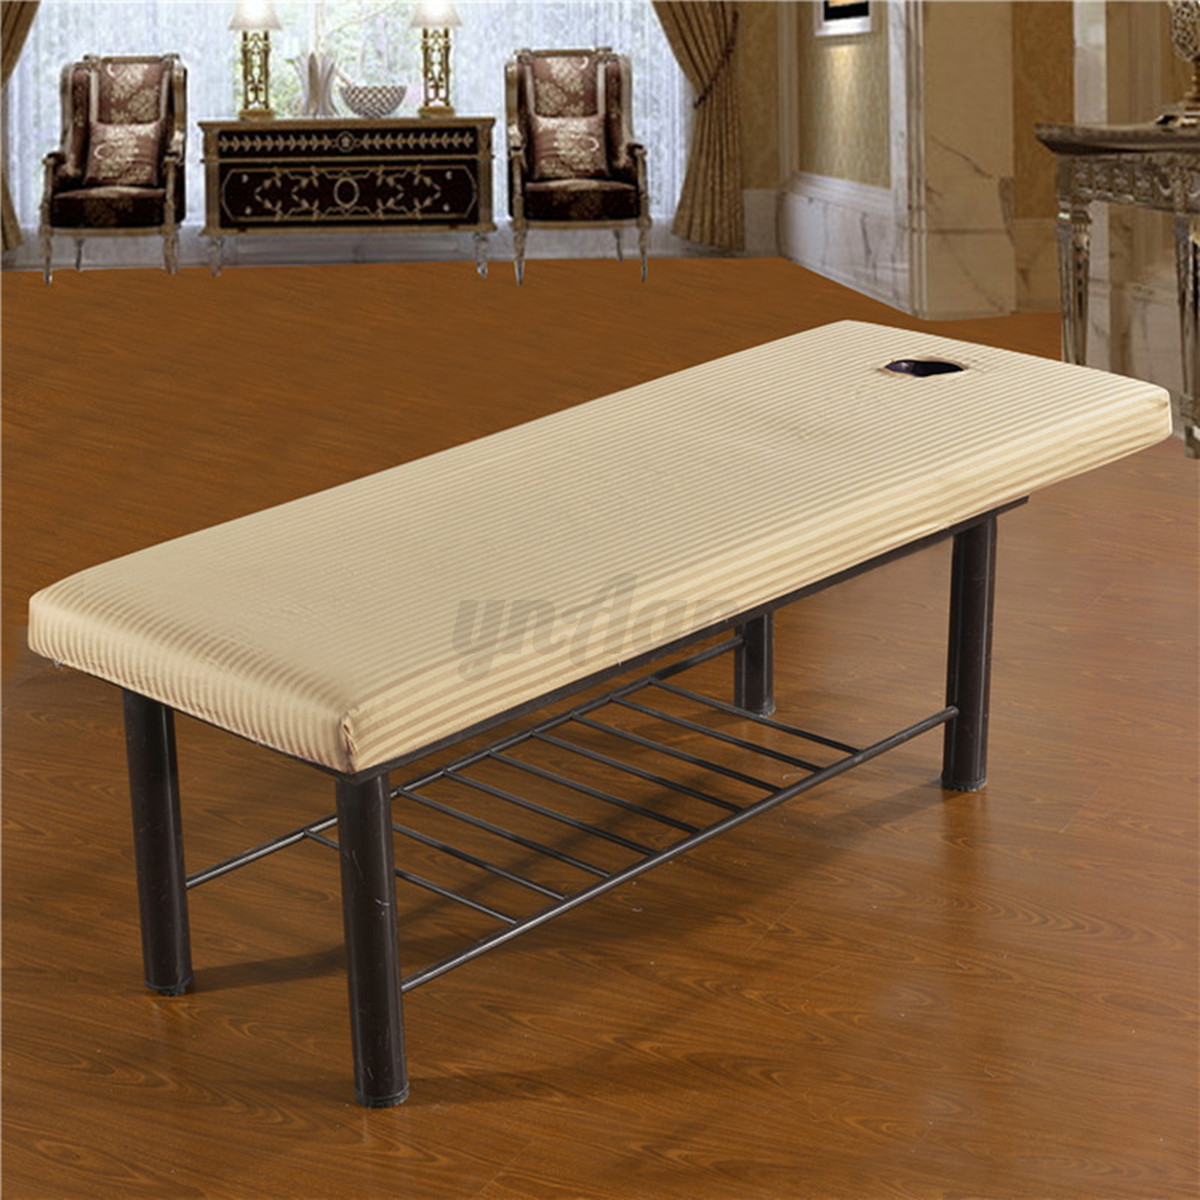 Sorry, bed facial massage sheet spa table think